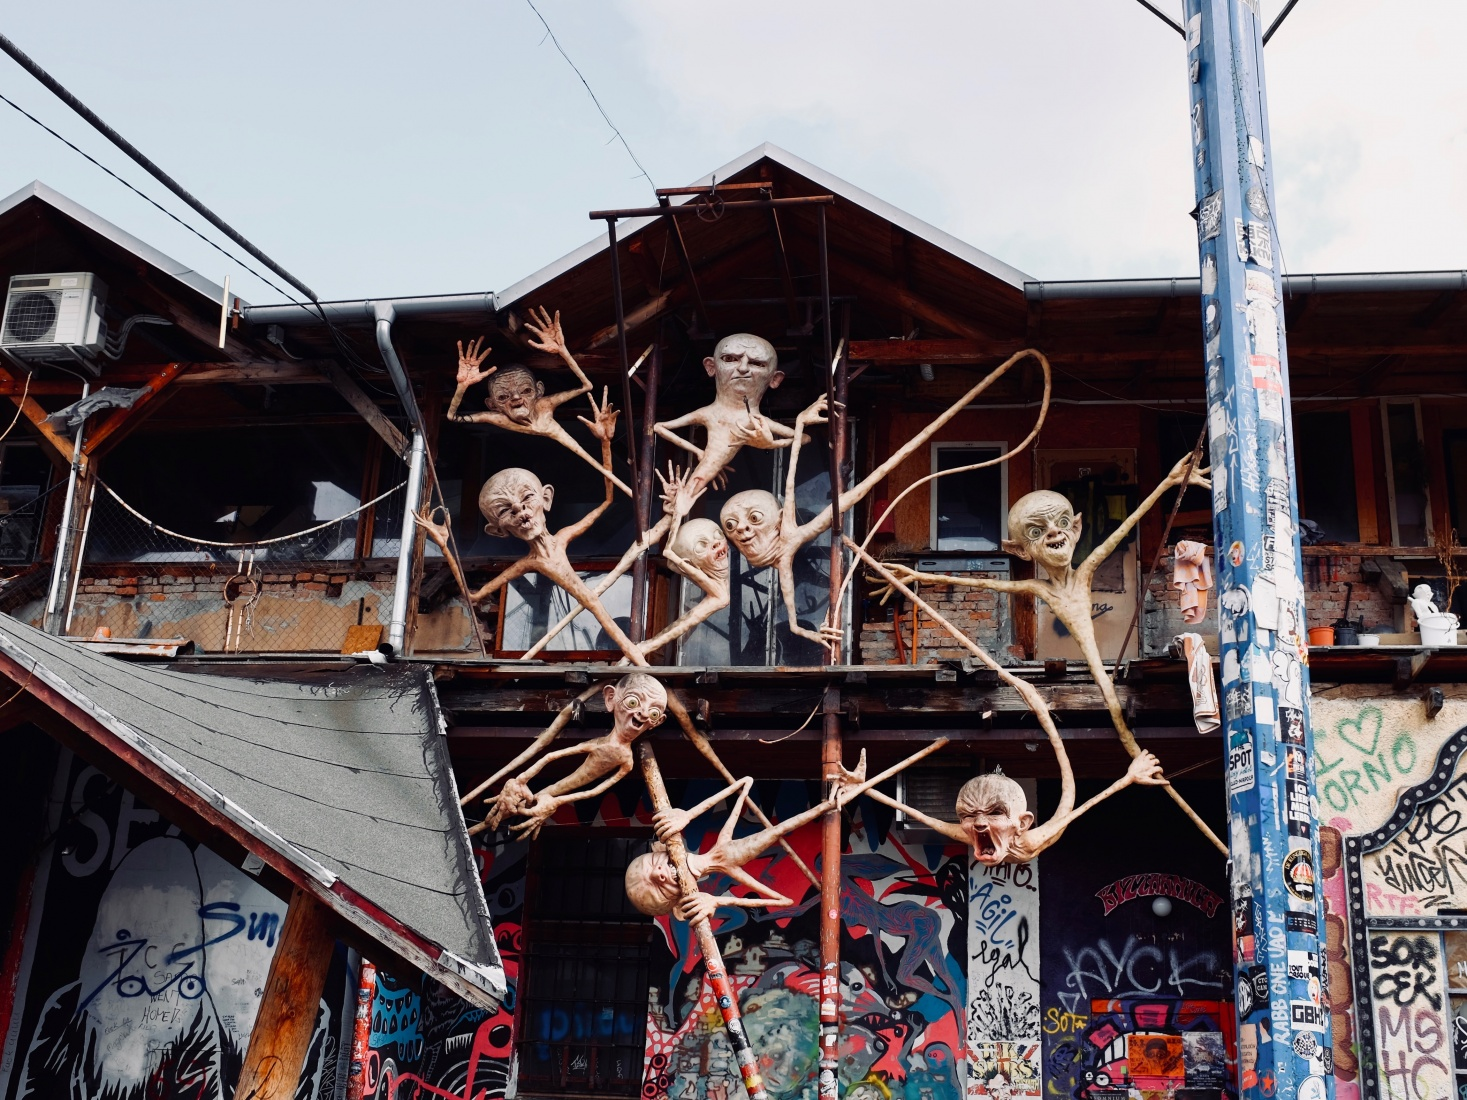 Demon statues among graffiti at Metelkova Mesto squat, in abandoned military barracks, popular with students and youth in Ljubljana, Slovenia.